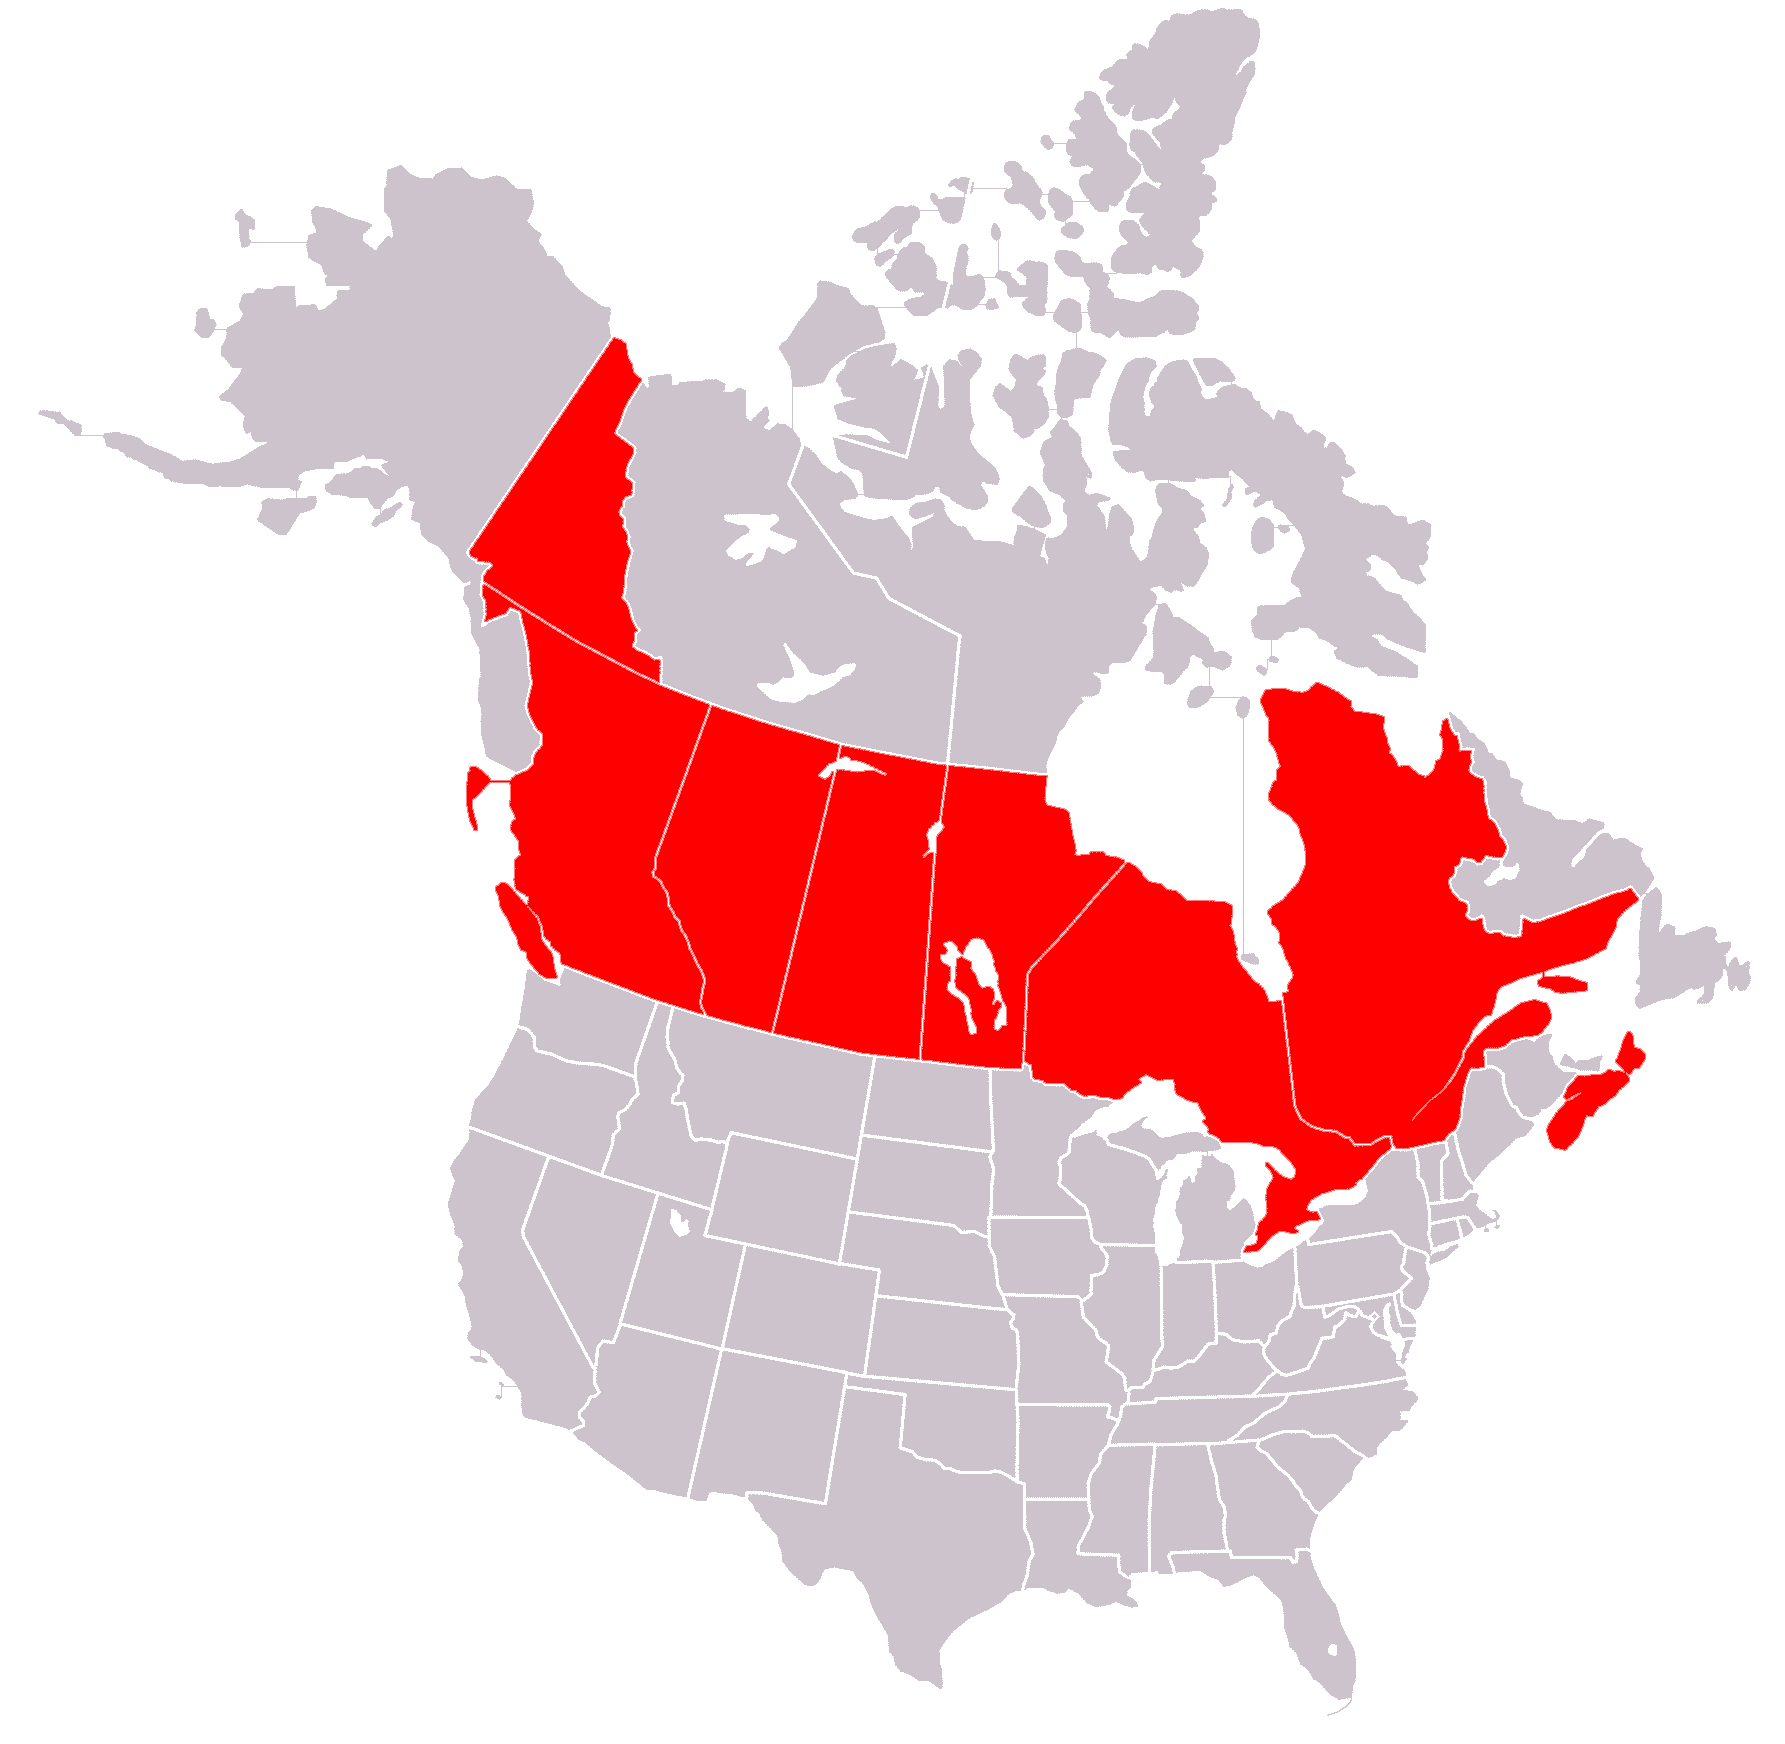 FileBlankMapUSAstatesCanadaprovinces Highlighting OCA - Map of us states and canada